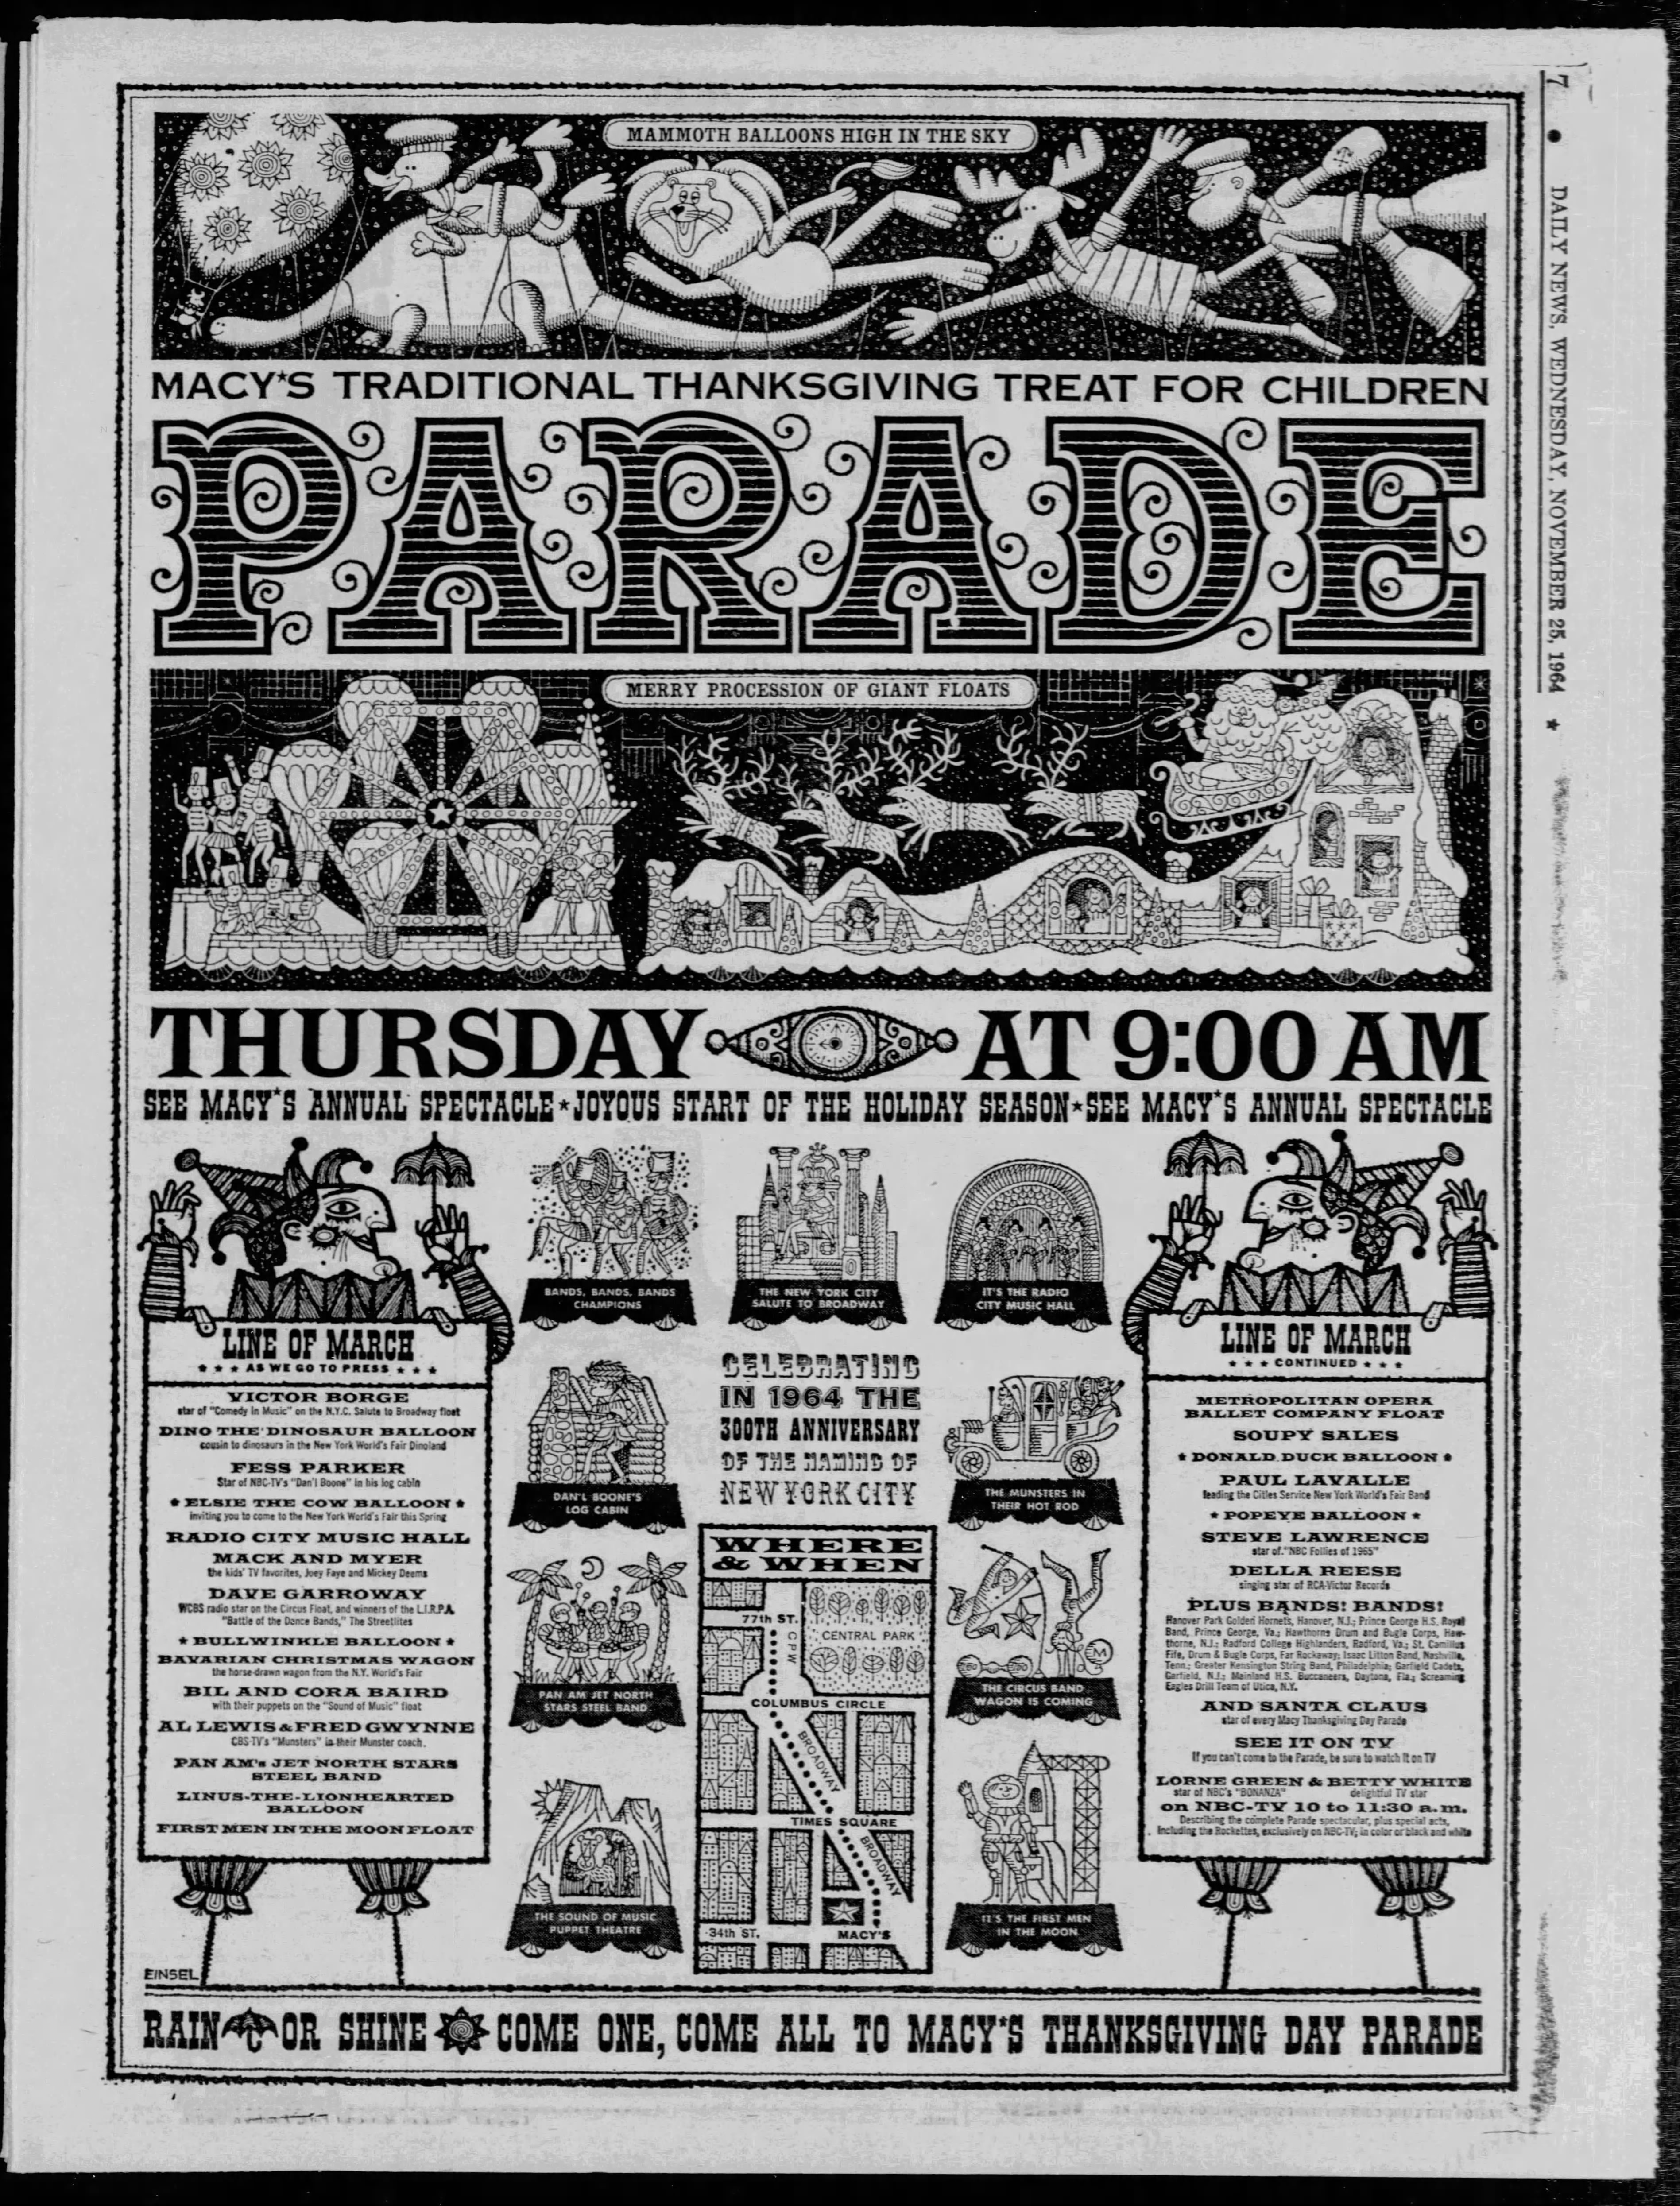 The 38th Annual Macy's Thanksgiving Day Parade